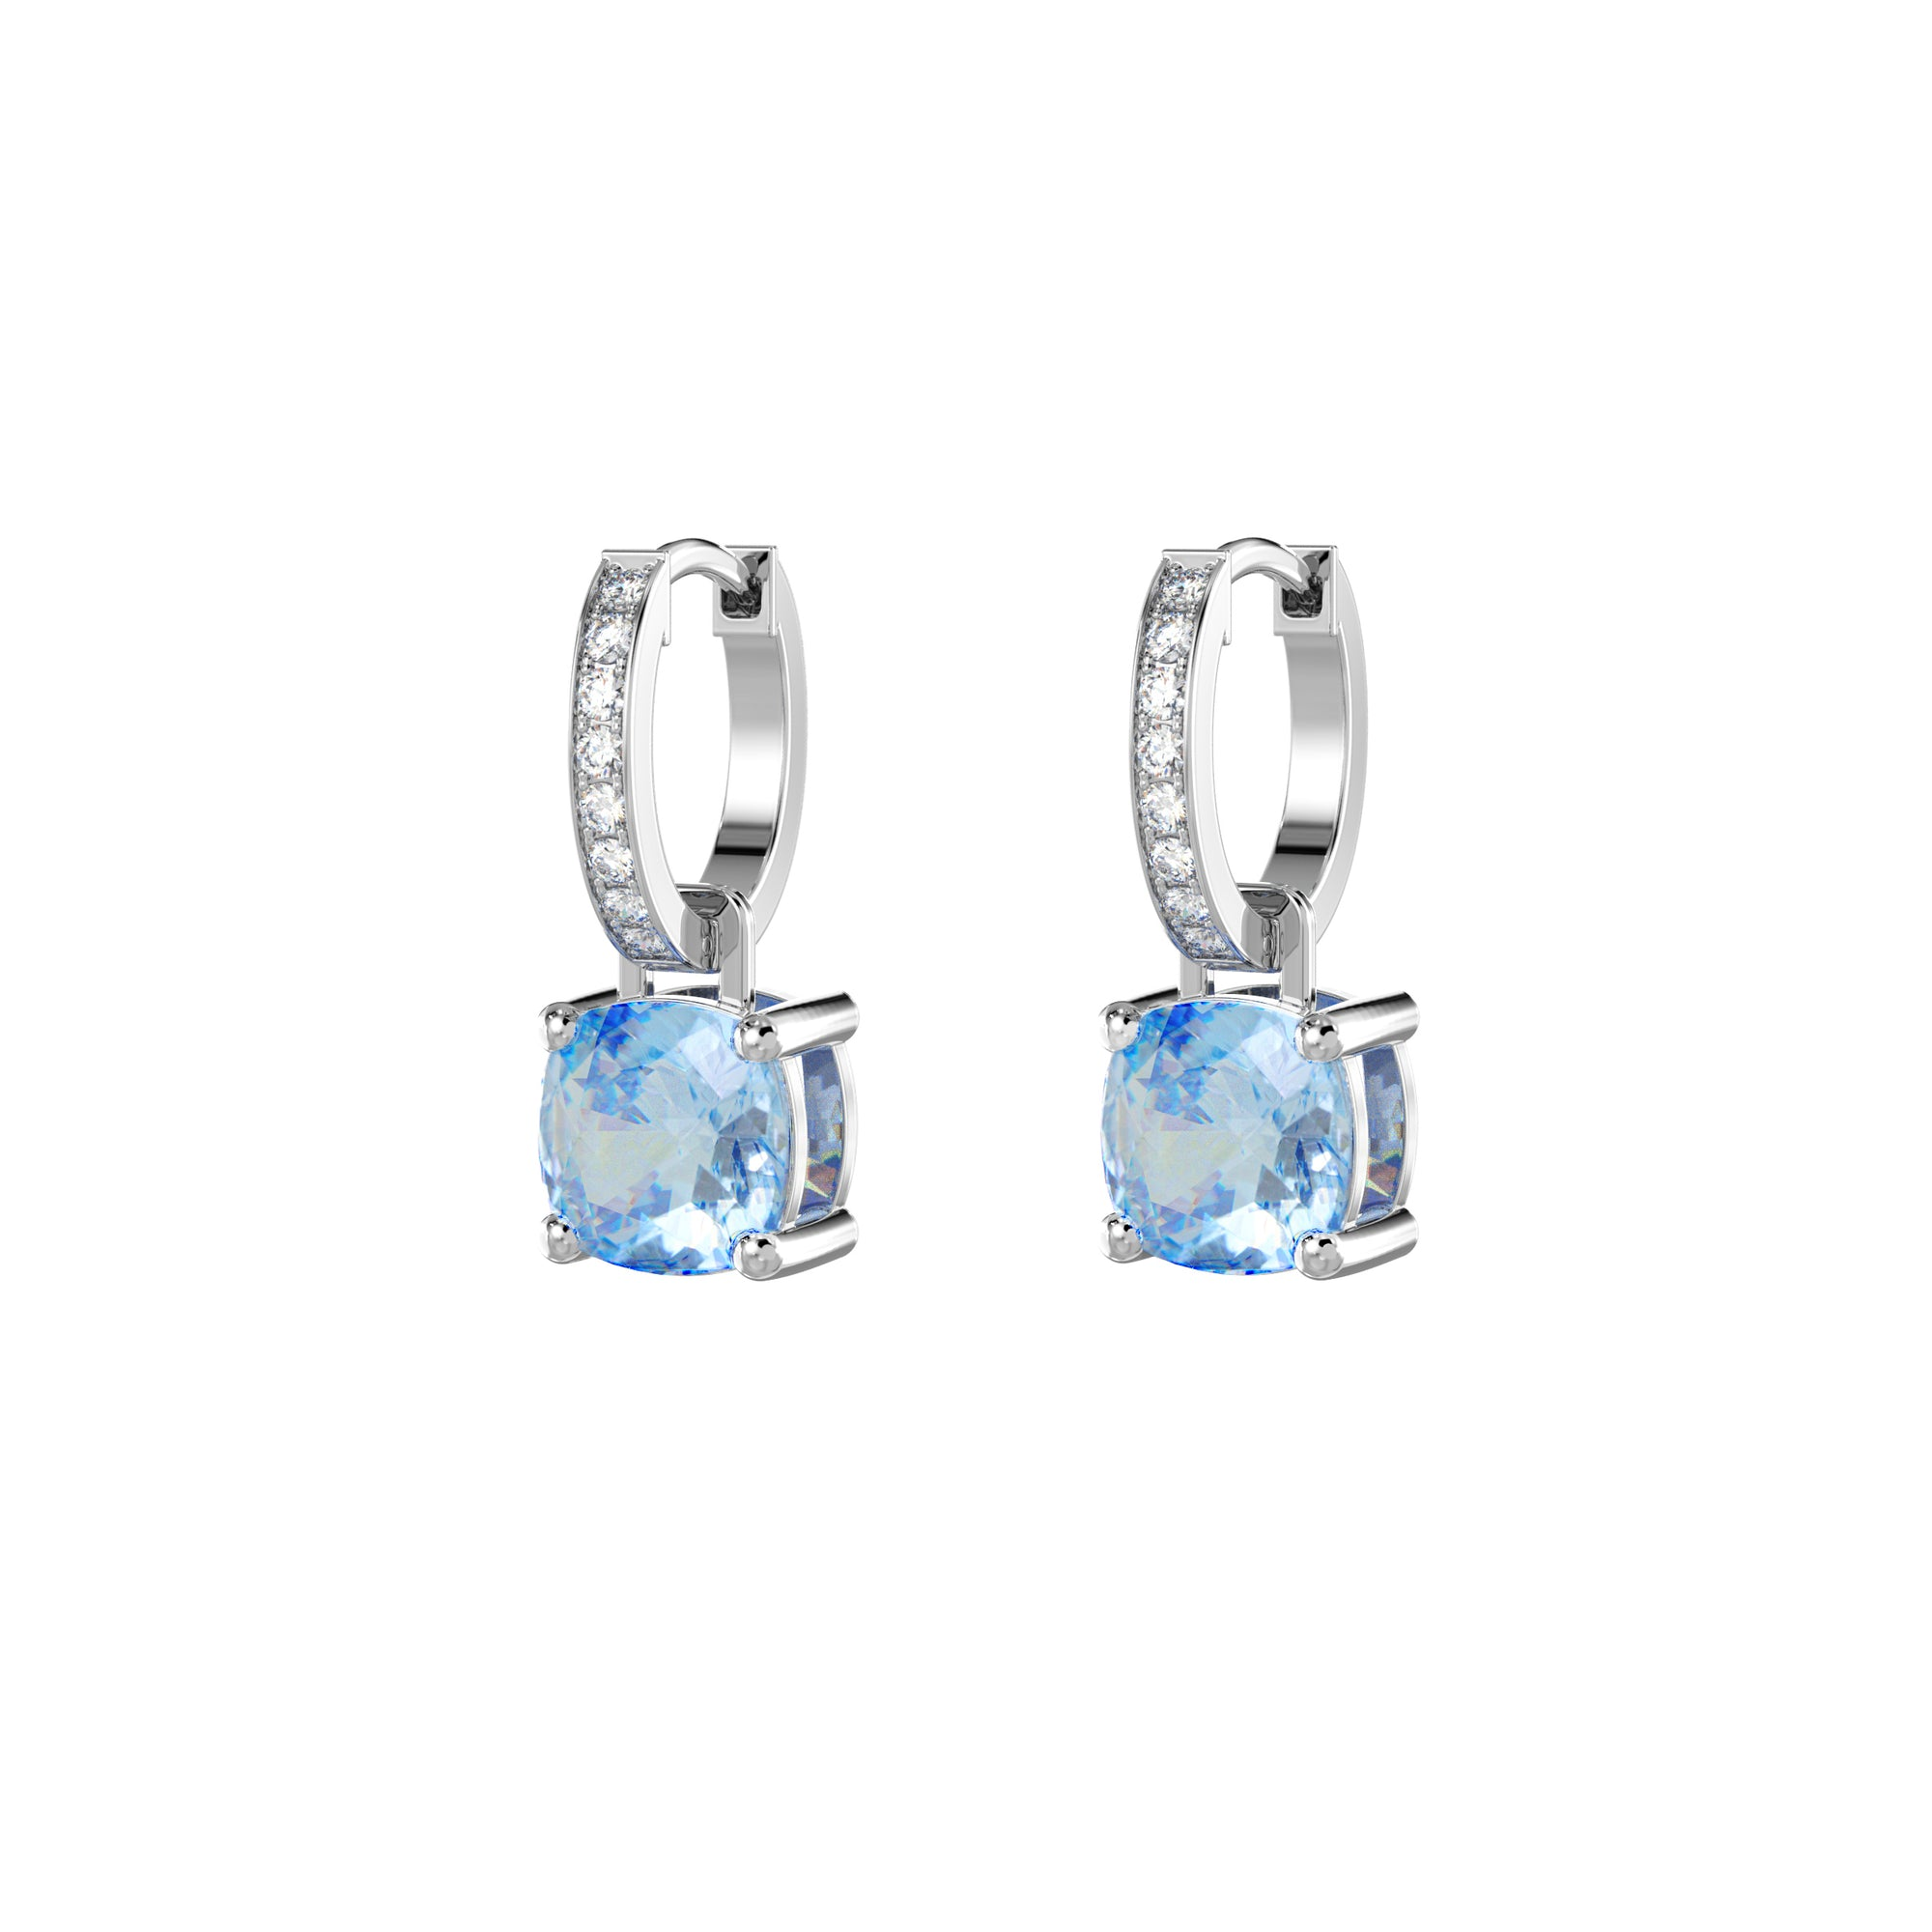 925 Silver Luxe Series Earrings Charms - Wylie (Topaz)